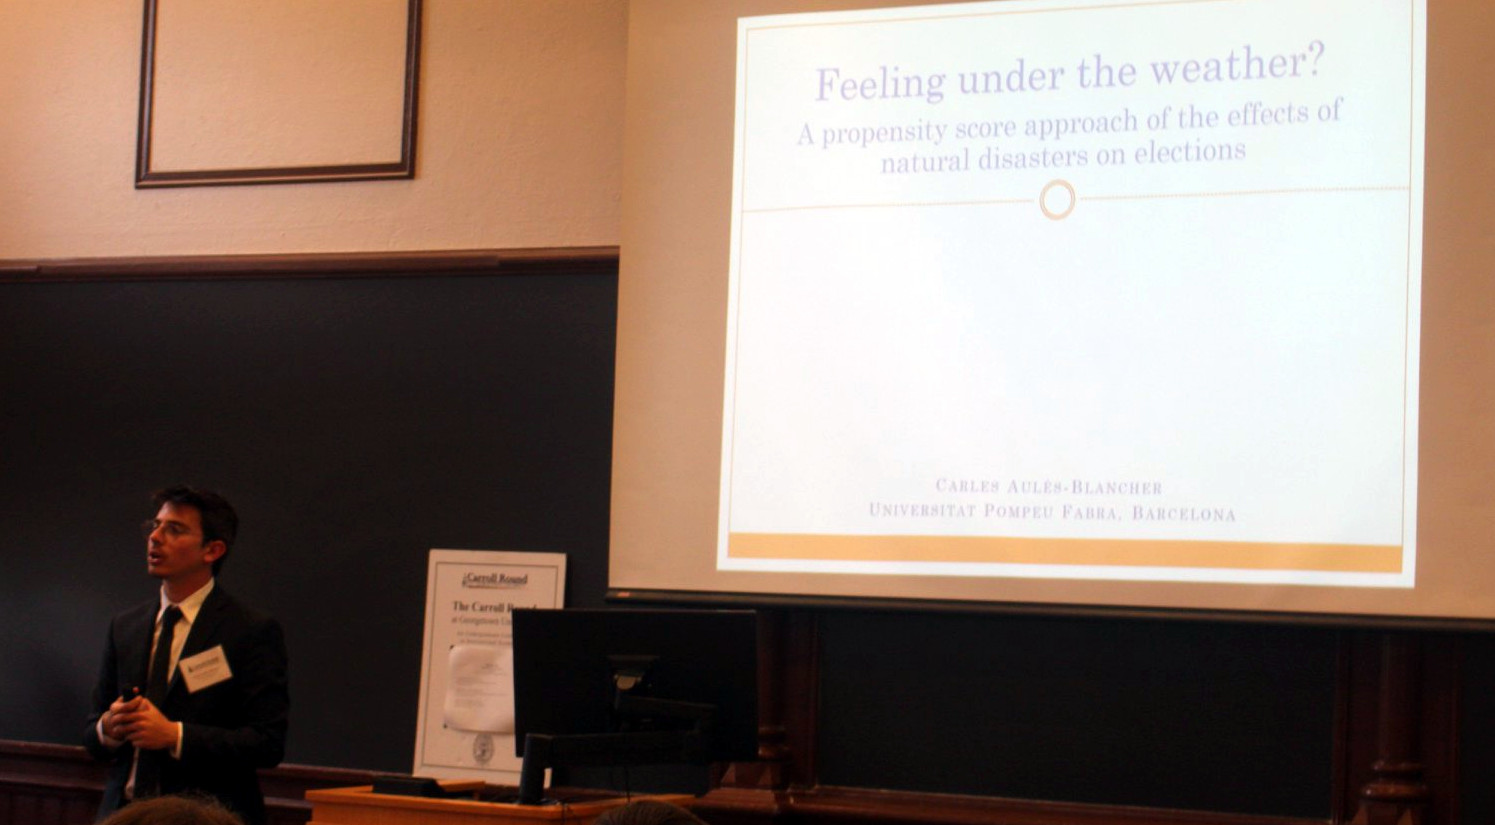 Carles Aulés Blancher presenting his paper